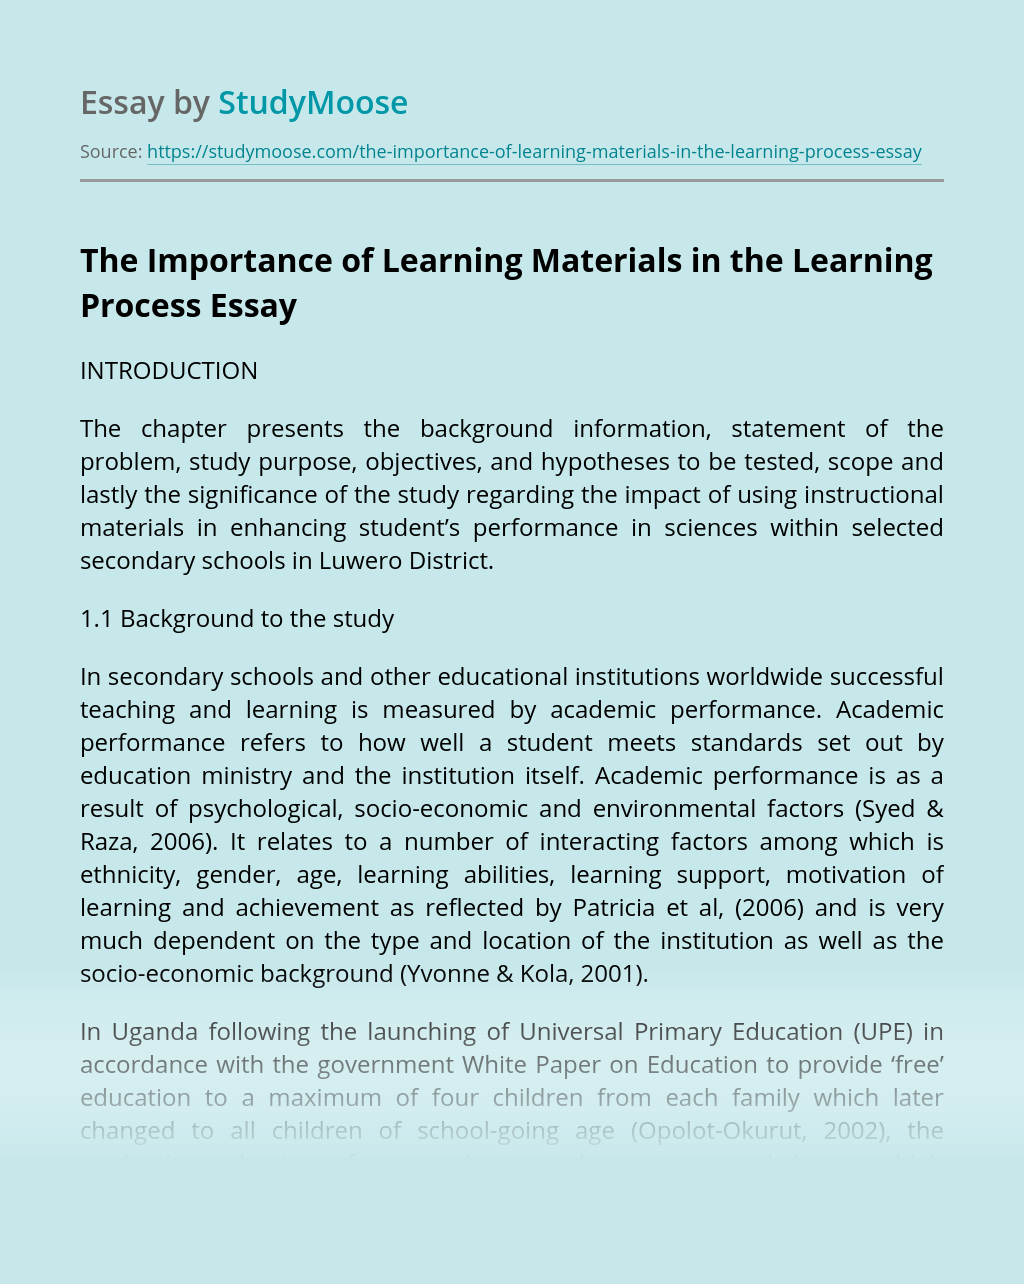 The Importance of Learning Materials in the Learning Process